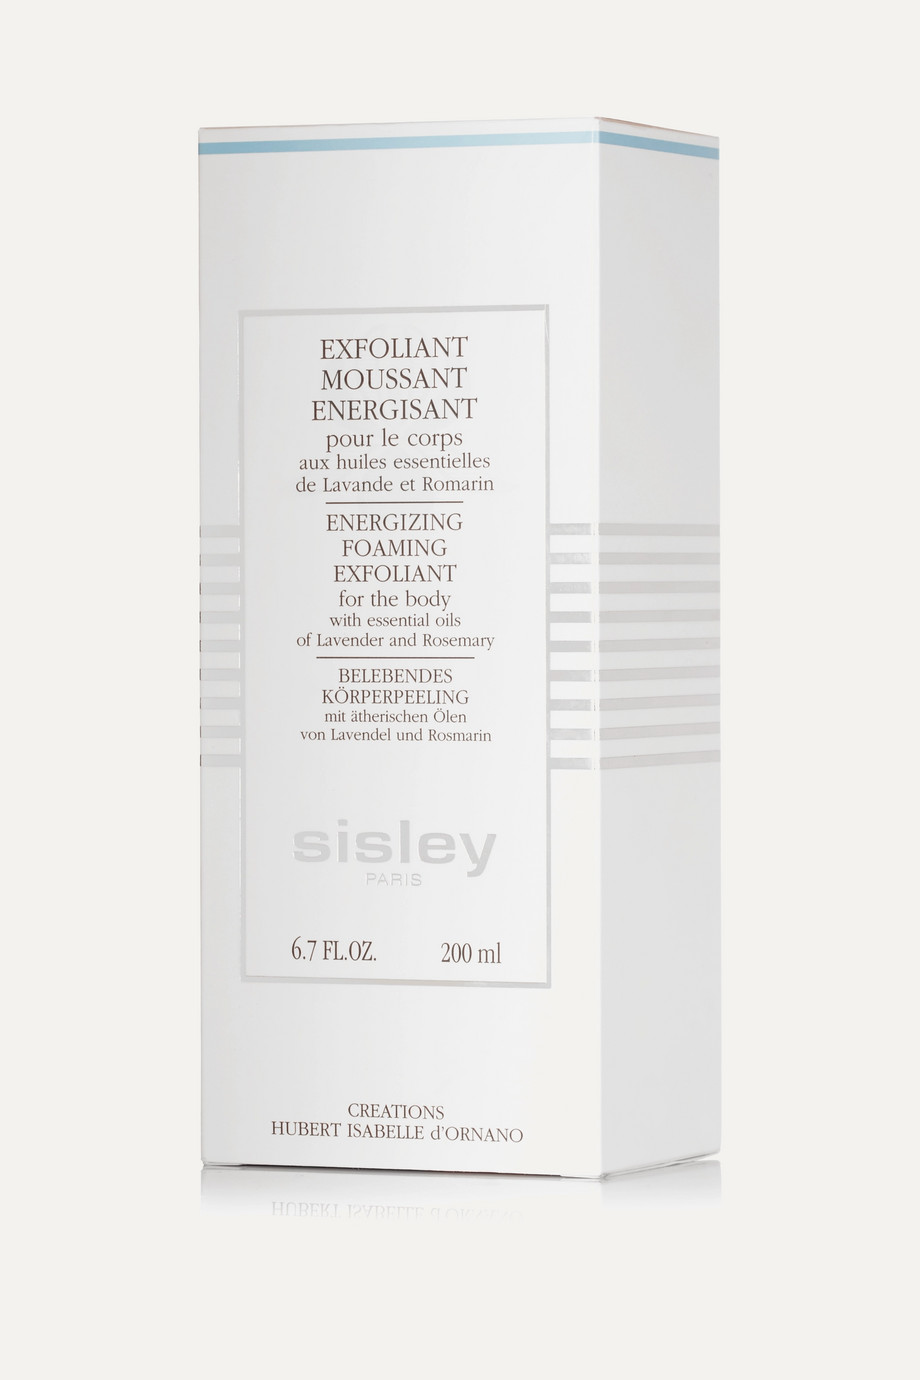 Sisley Energizing Foaming Body Exfoliator, 200ml